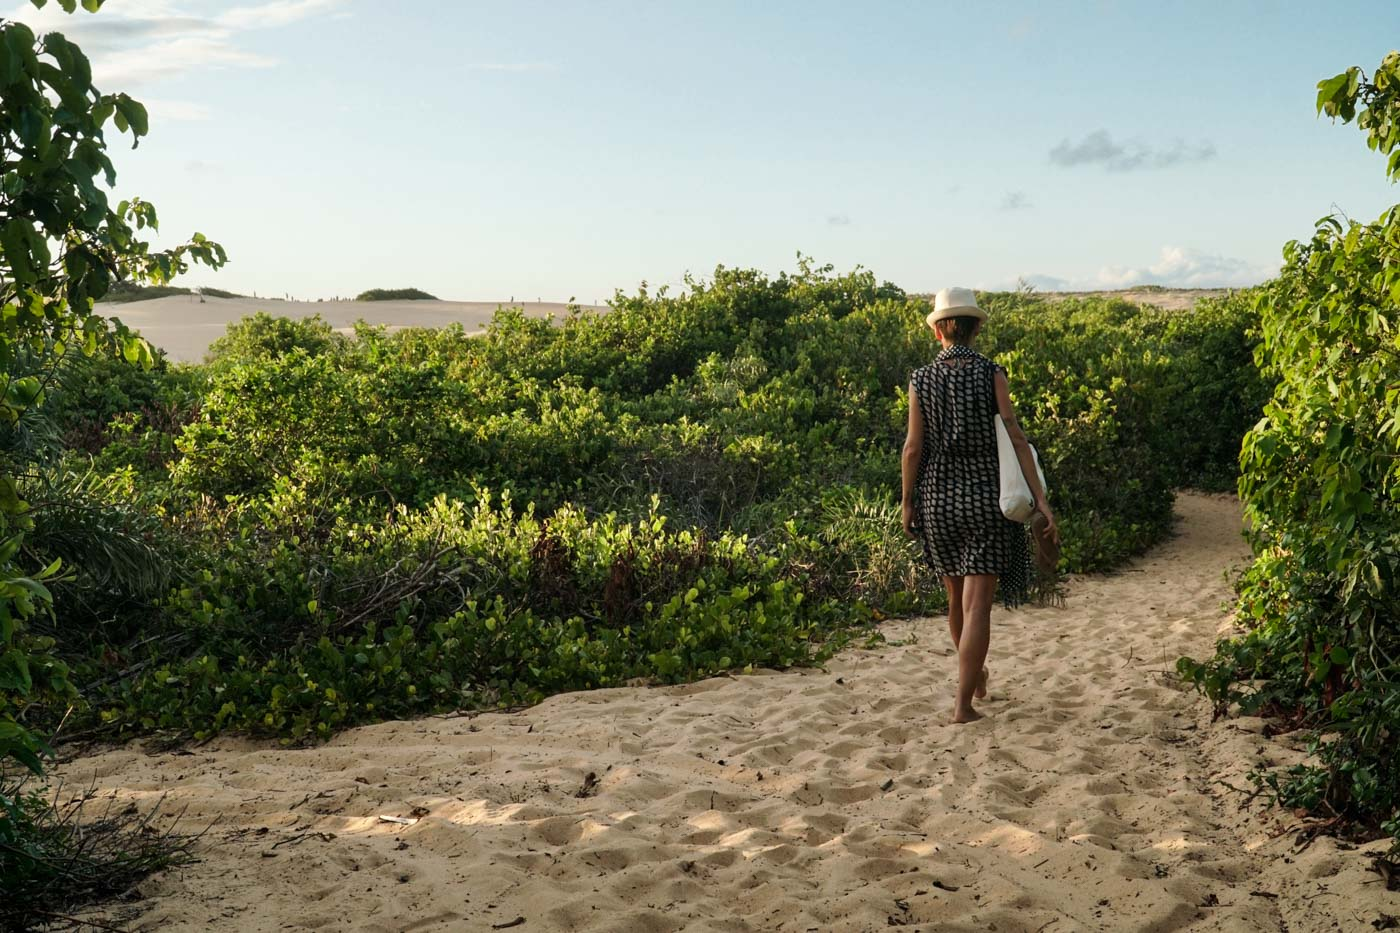 Fe walking in the sand surrounded by vegetation